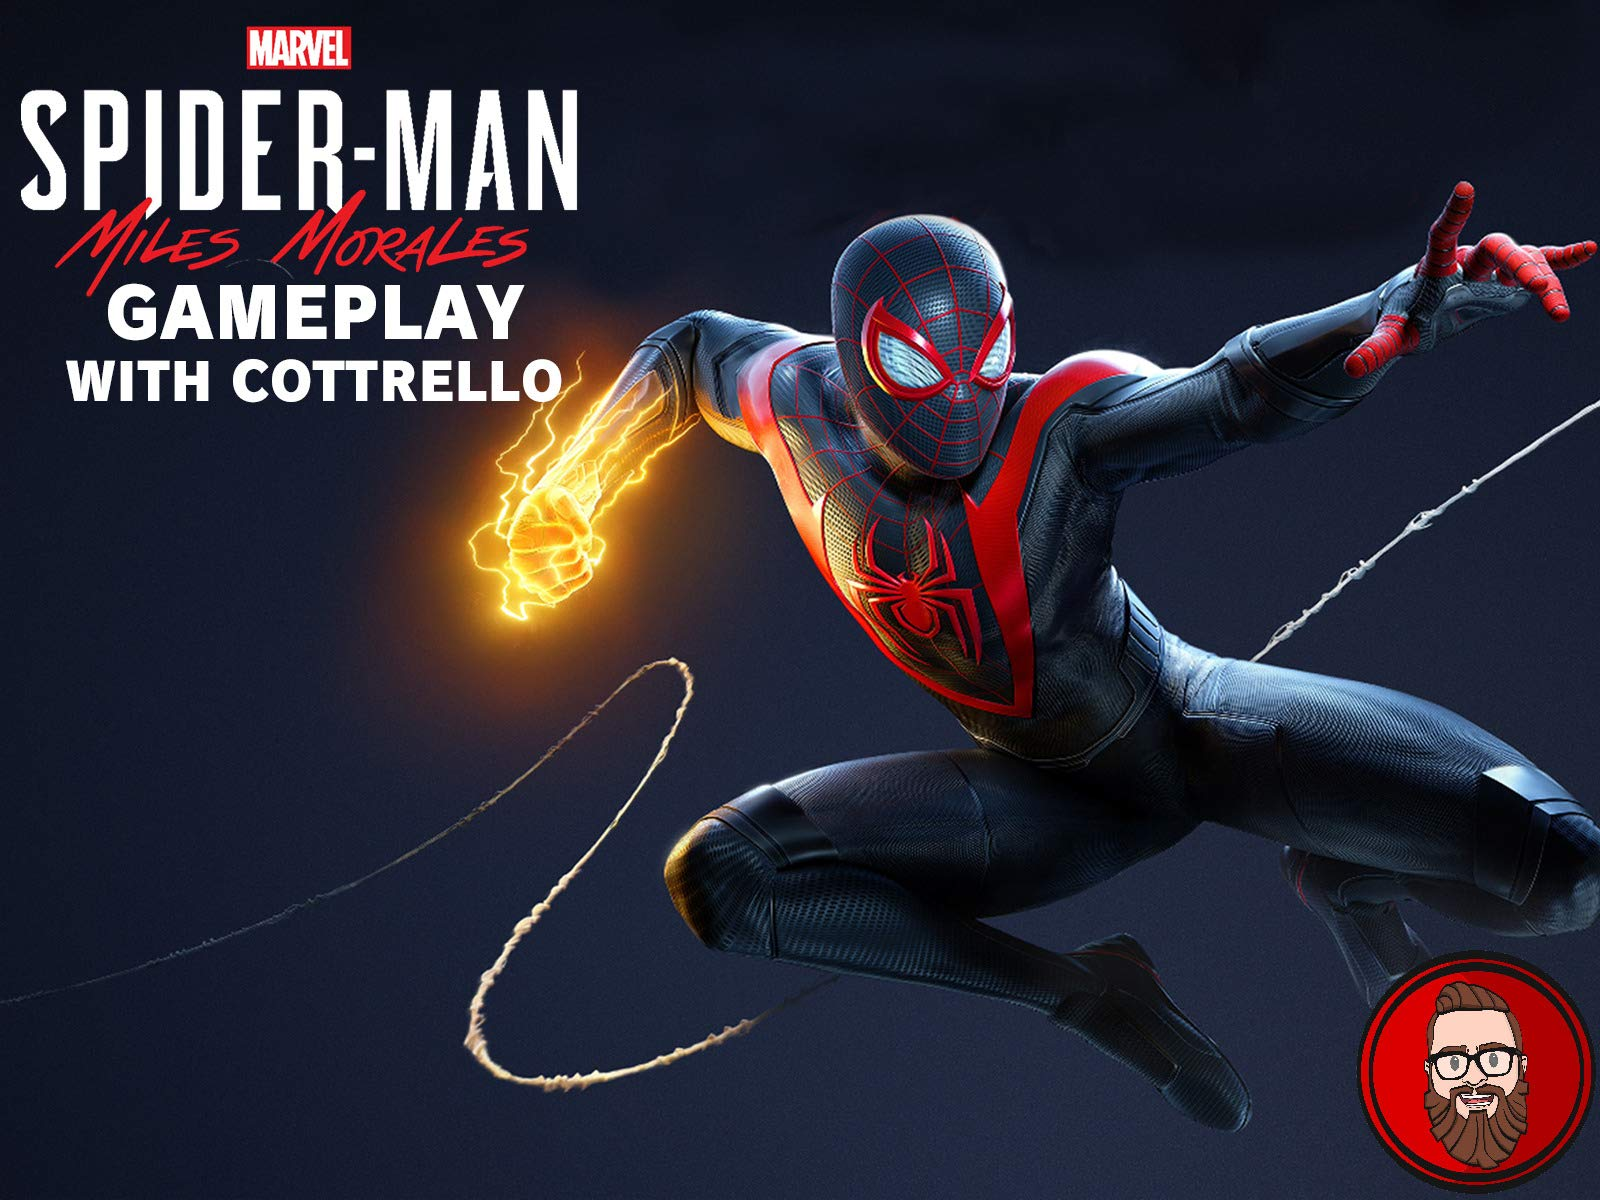 Clip: Marvel's Spider-Man: Miles Morales Gameplay with Cottrello - Season 1